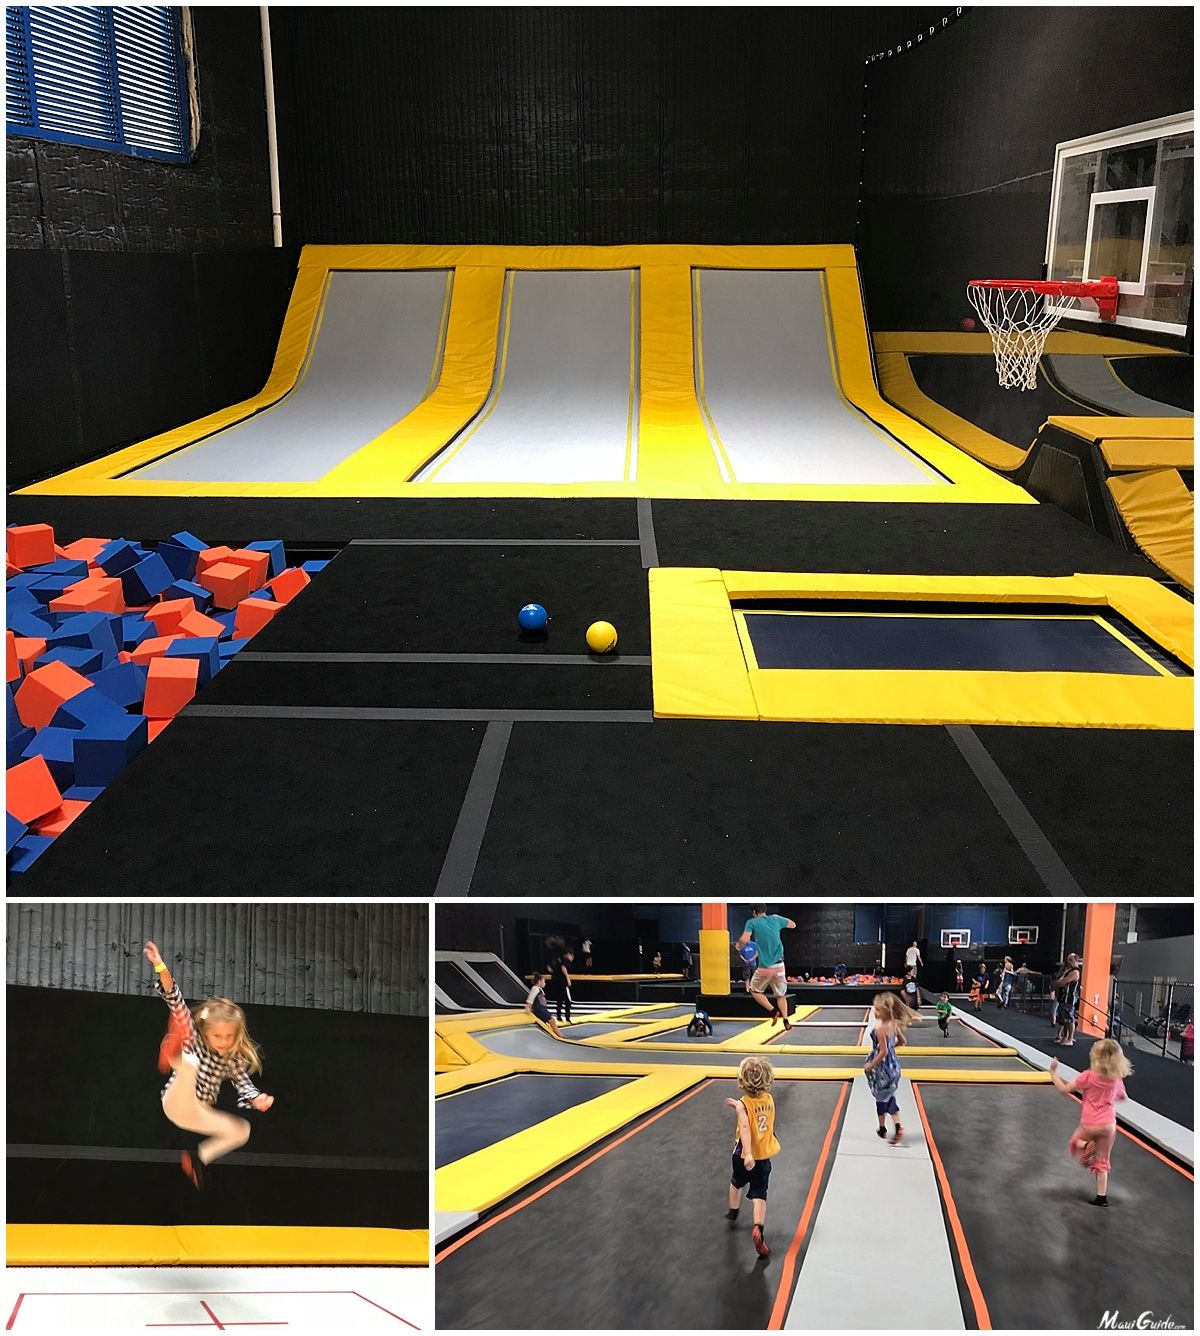 Ultimate Air Trampoline Park Review (With images) Maui